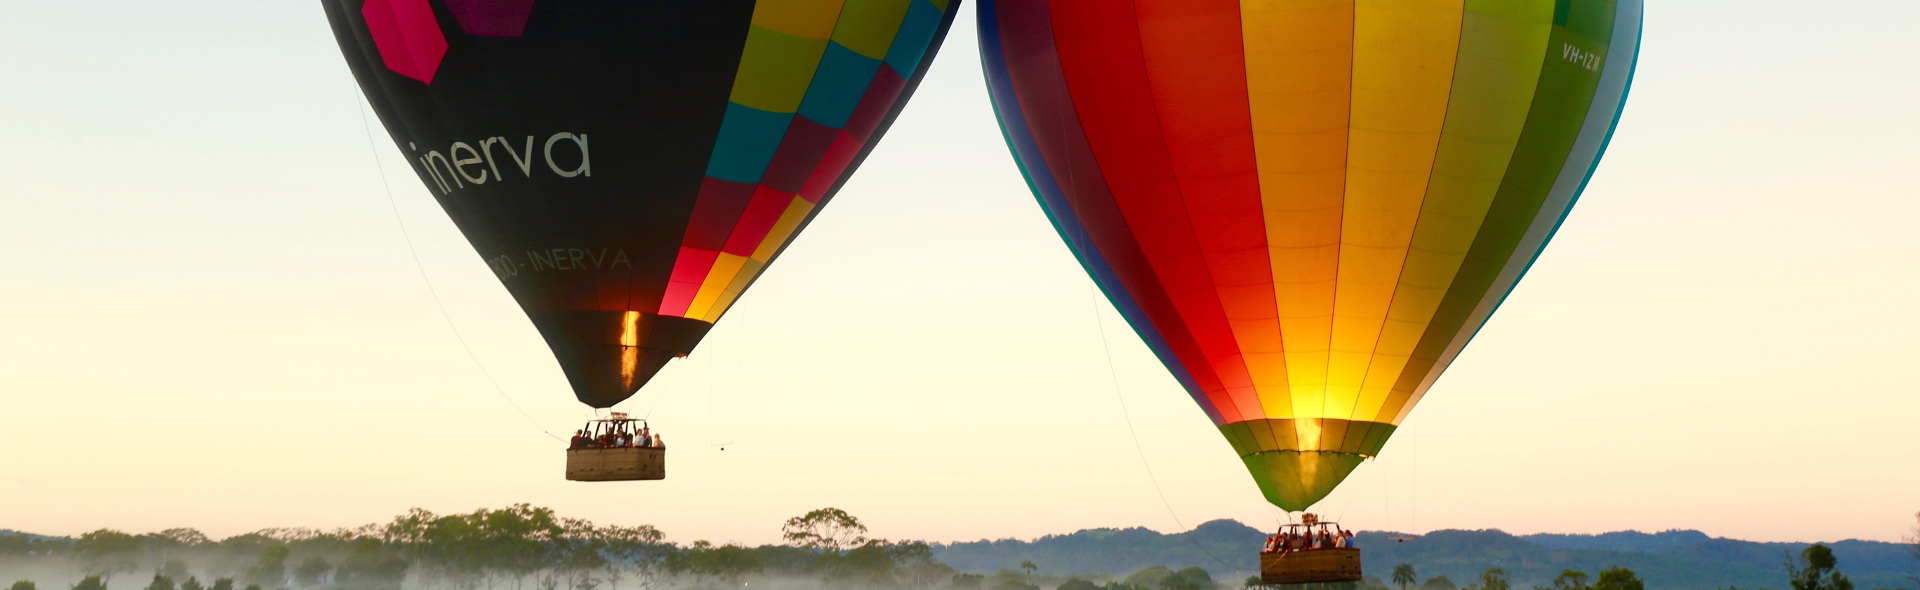 Unique Experiences Byron Bay Ballooning 1920x590